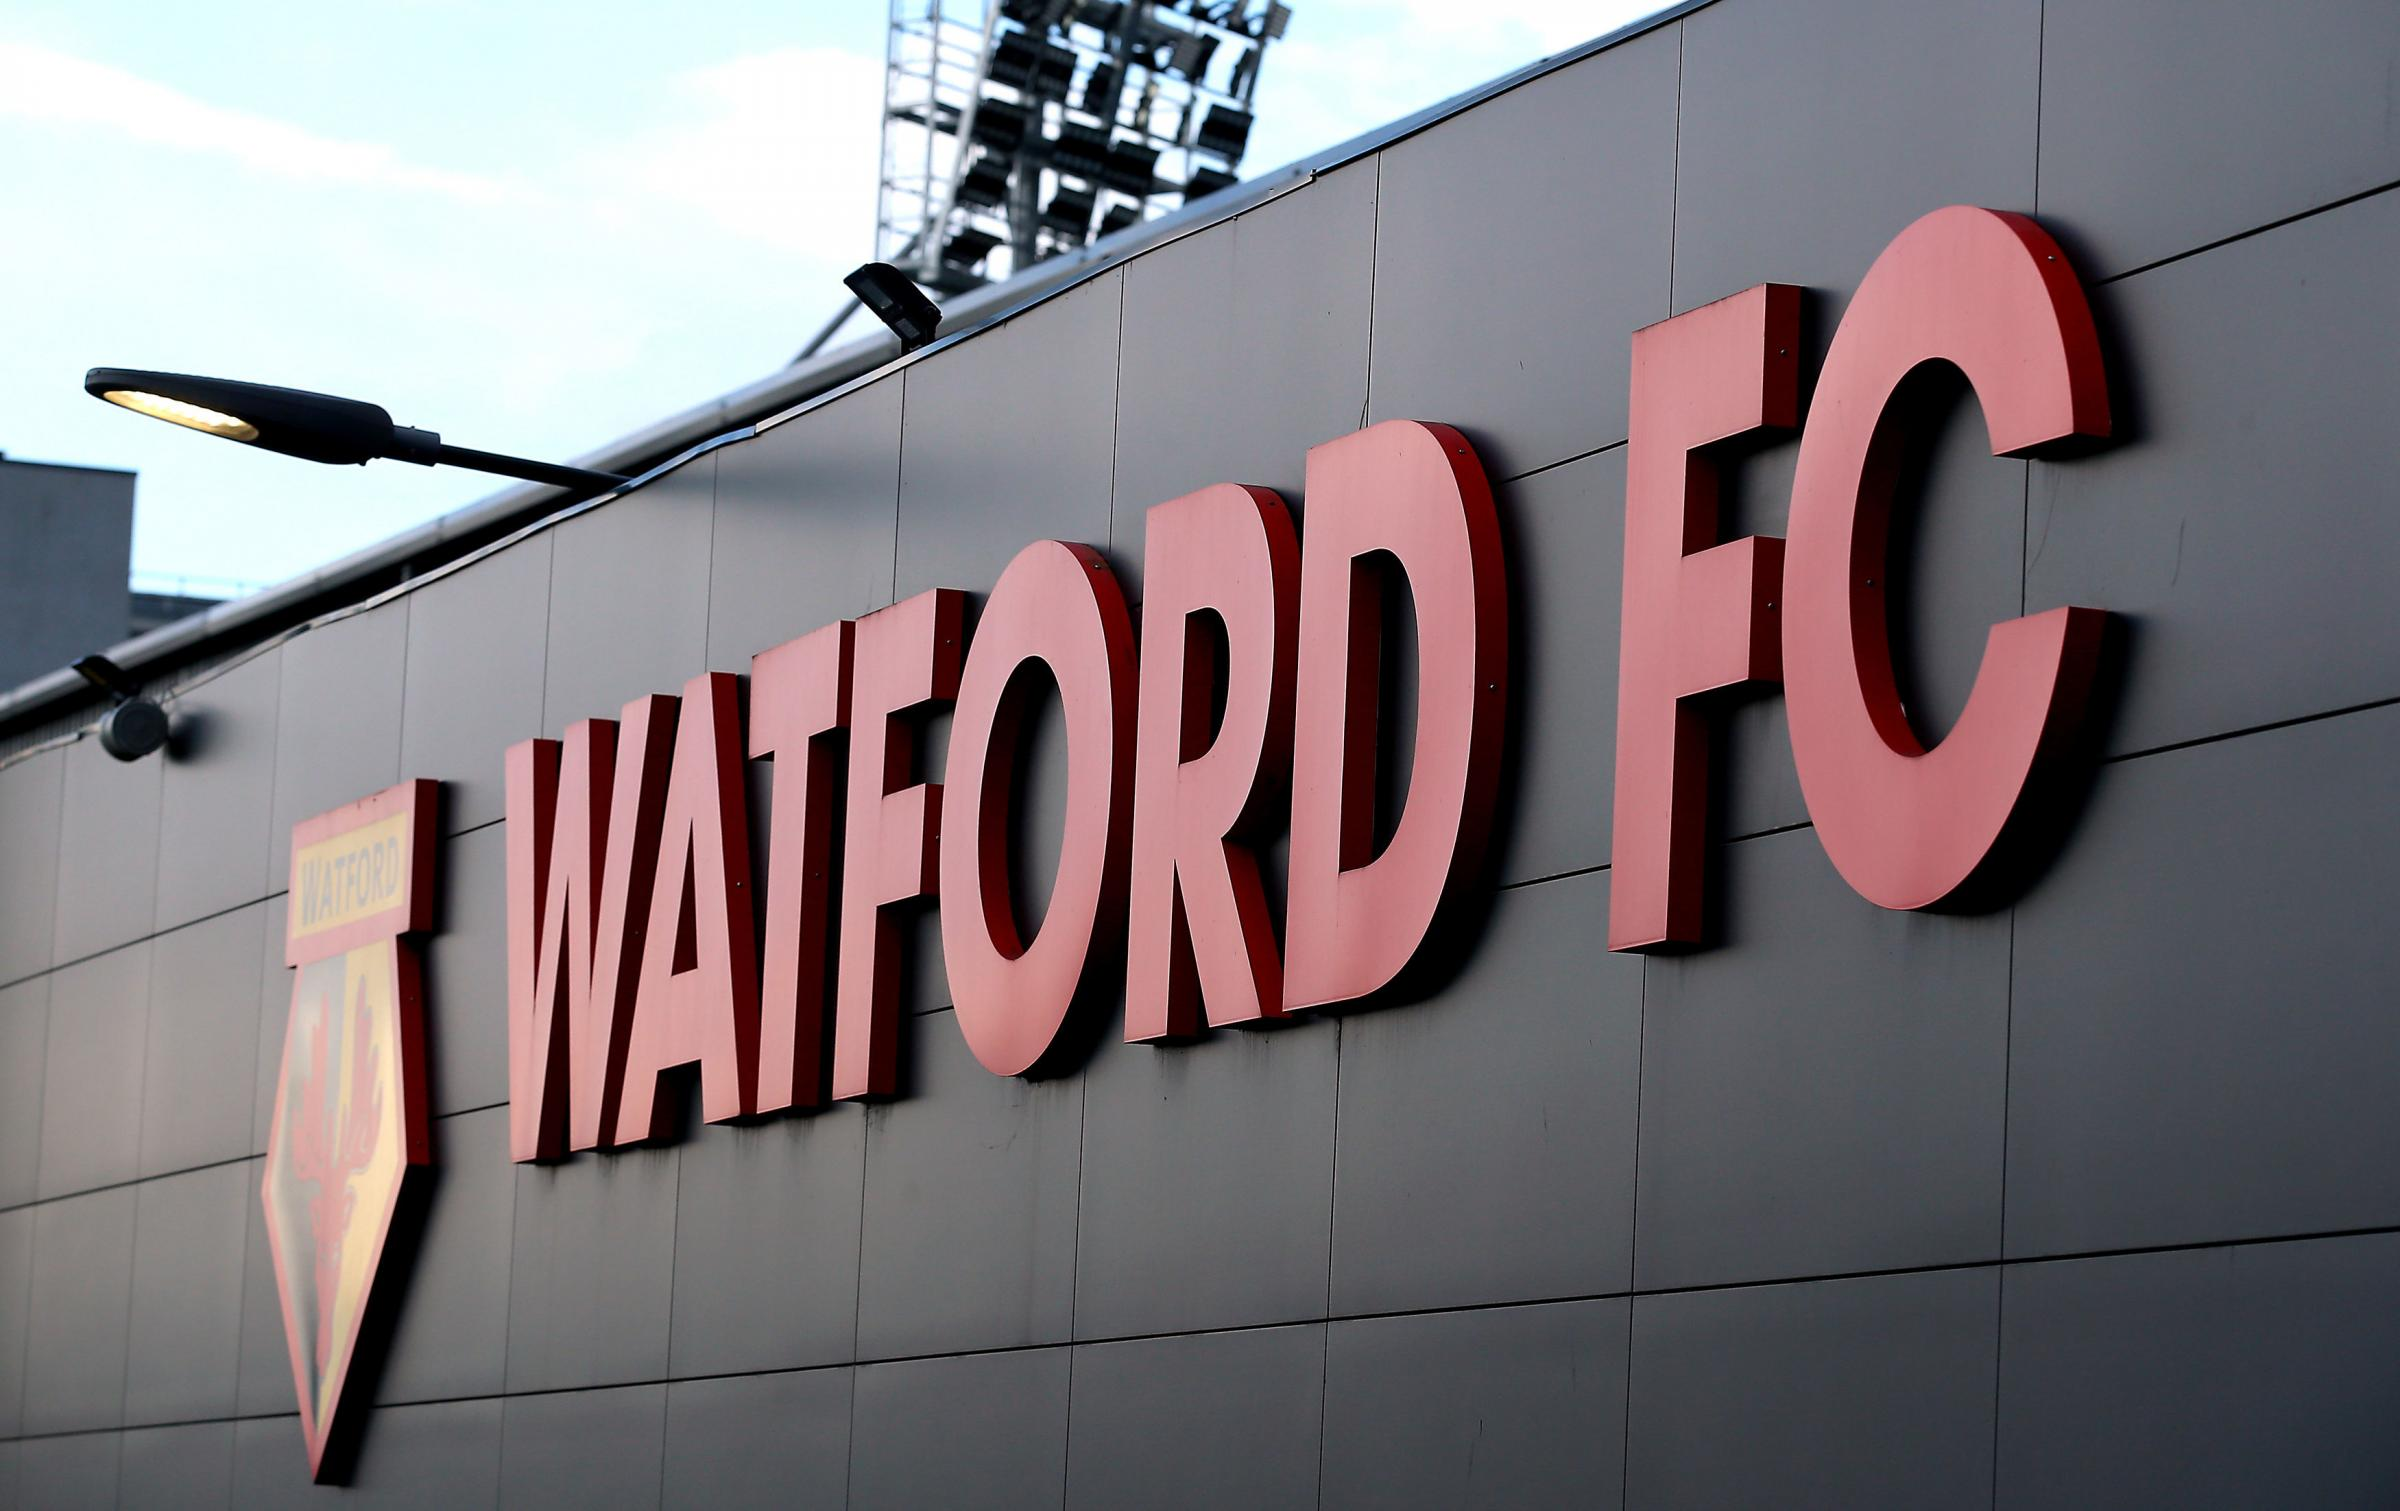 Watford reveal three positive Covid tests